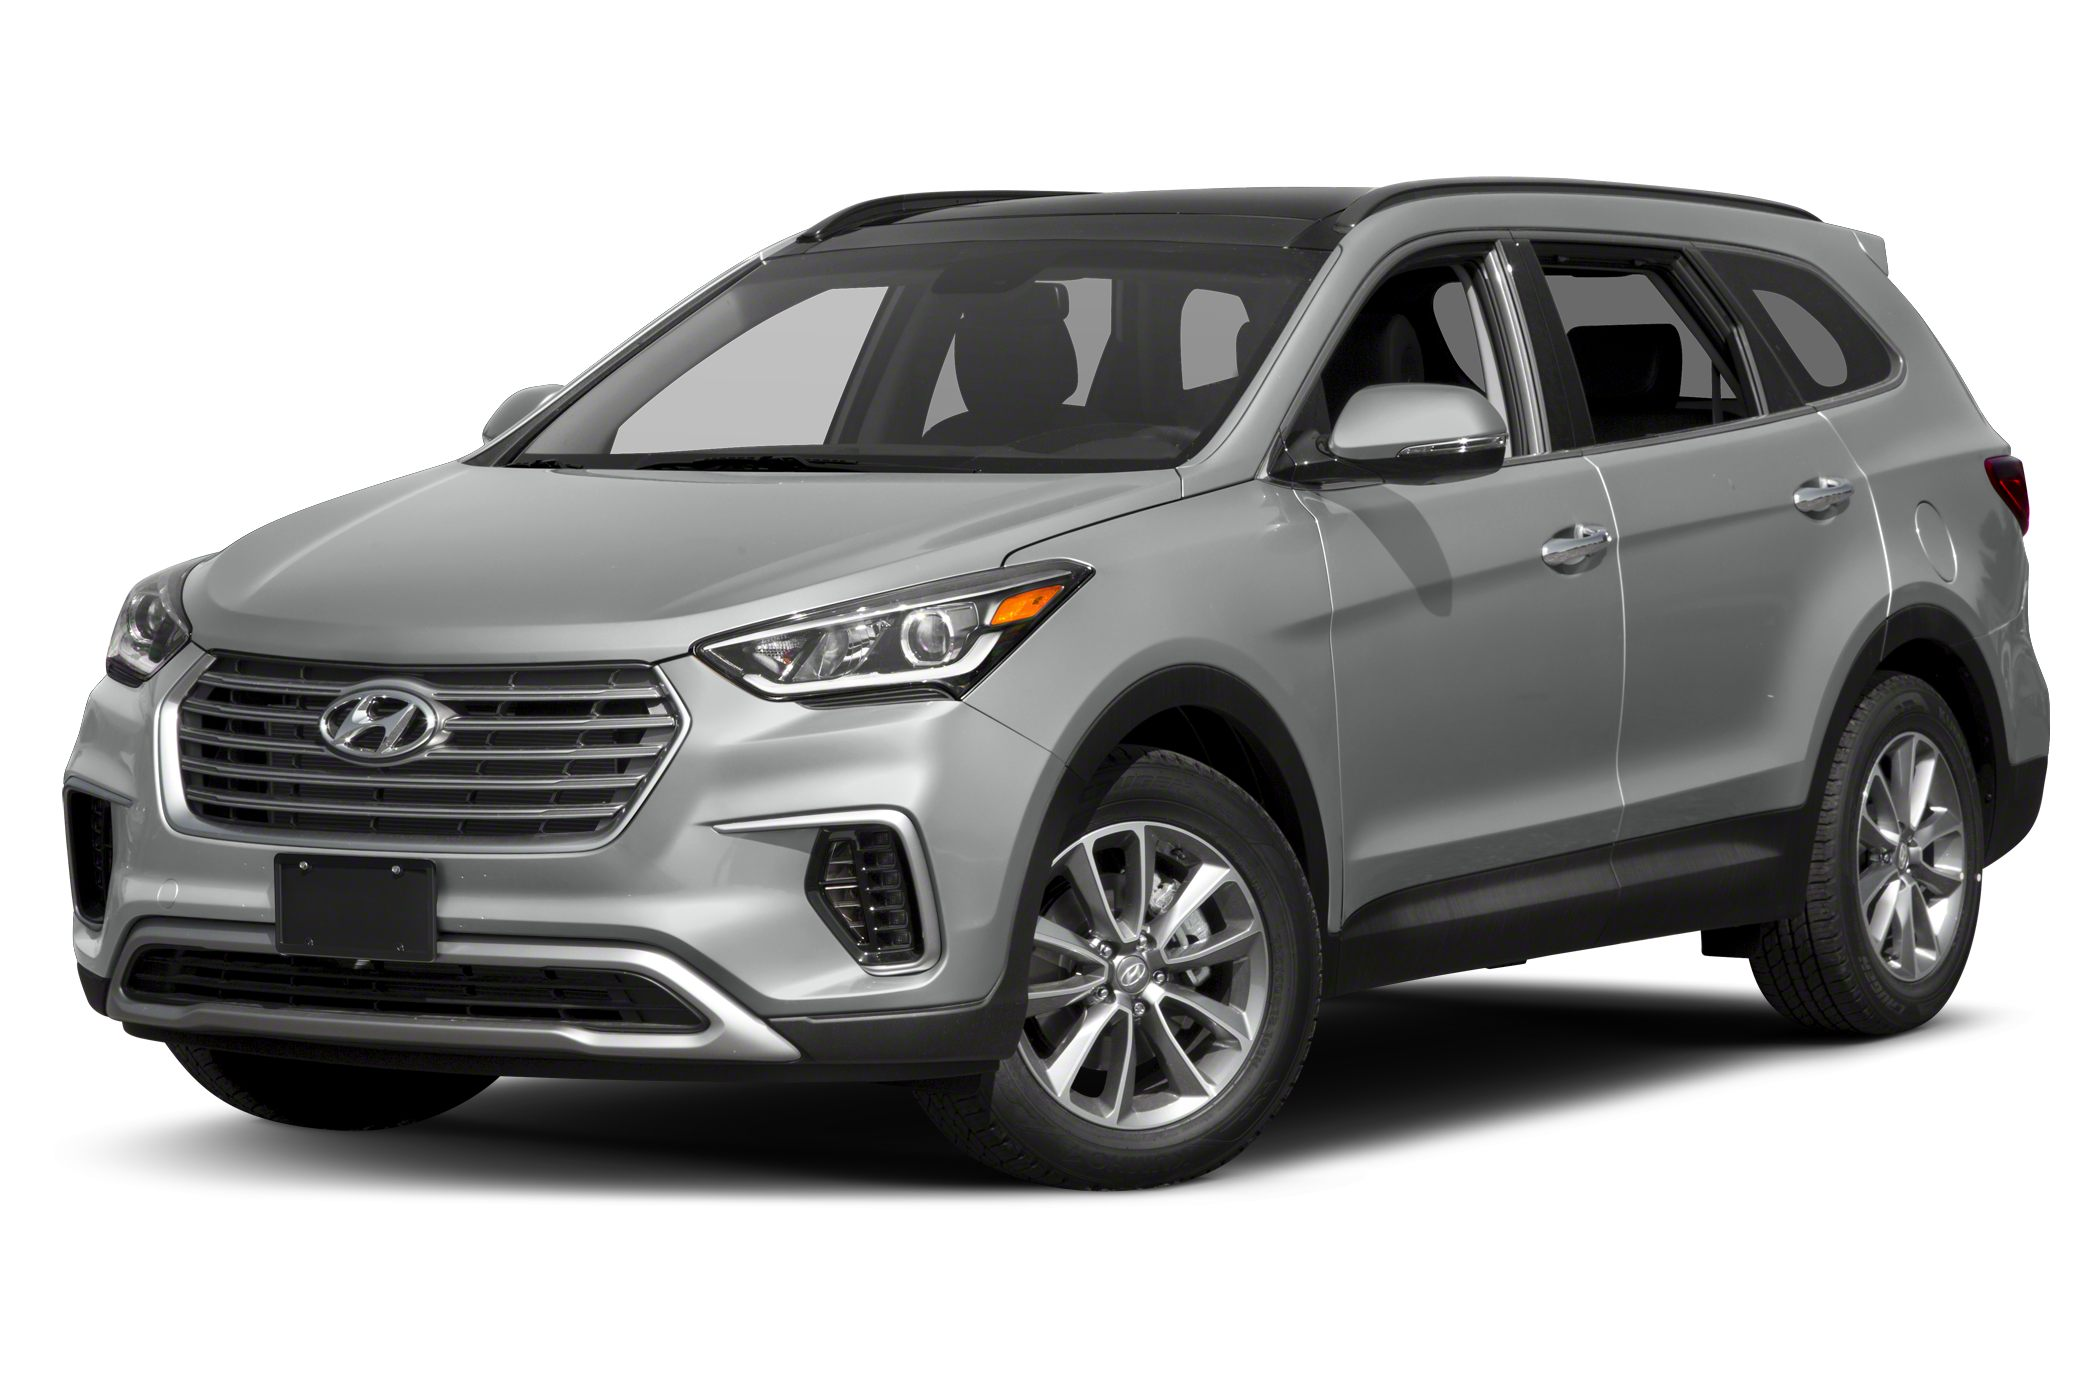 Hyundai Canada Incentives for the new 2019 Hyundai Santa Fe XL SUV in Milton, Toronto, and the GTA